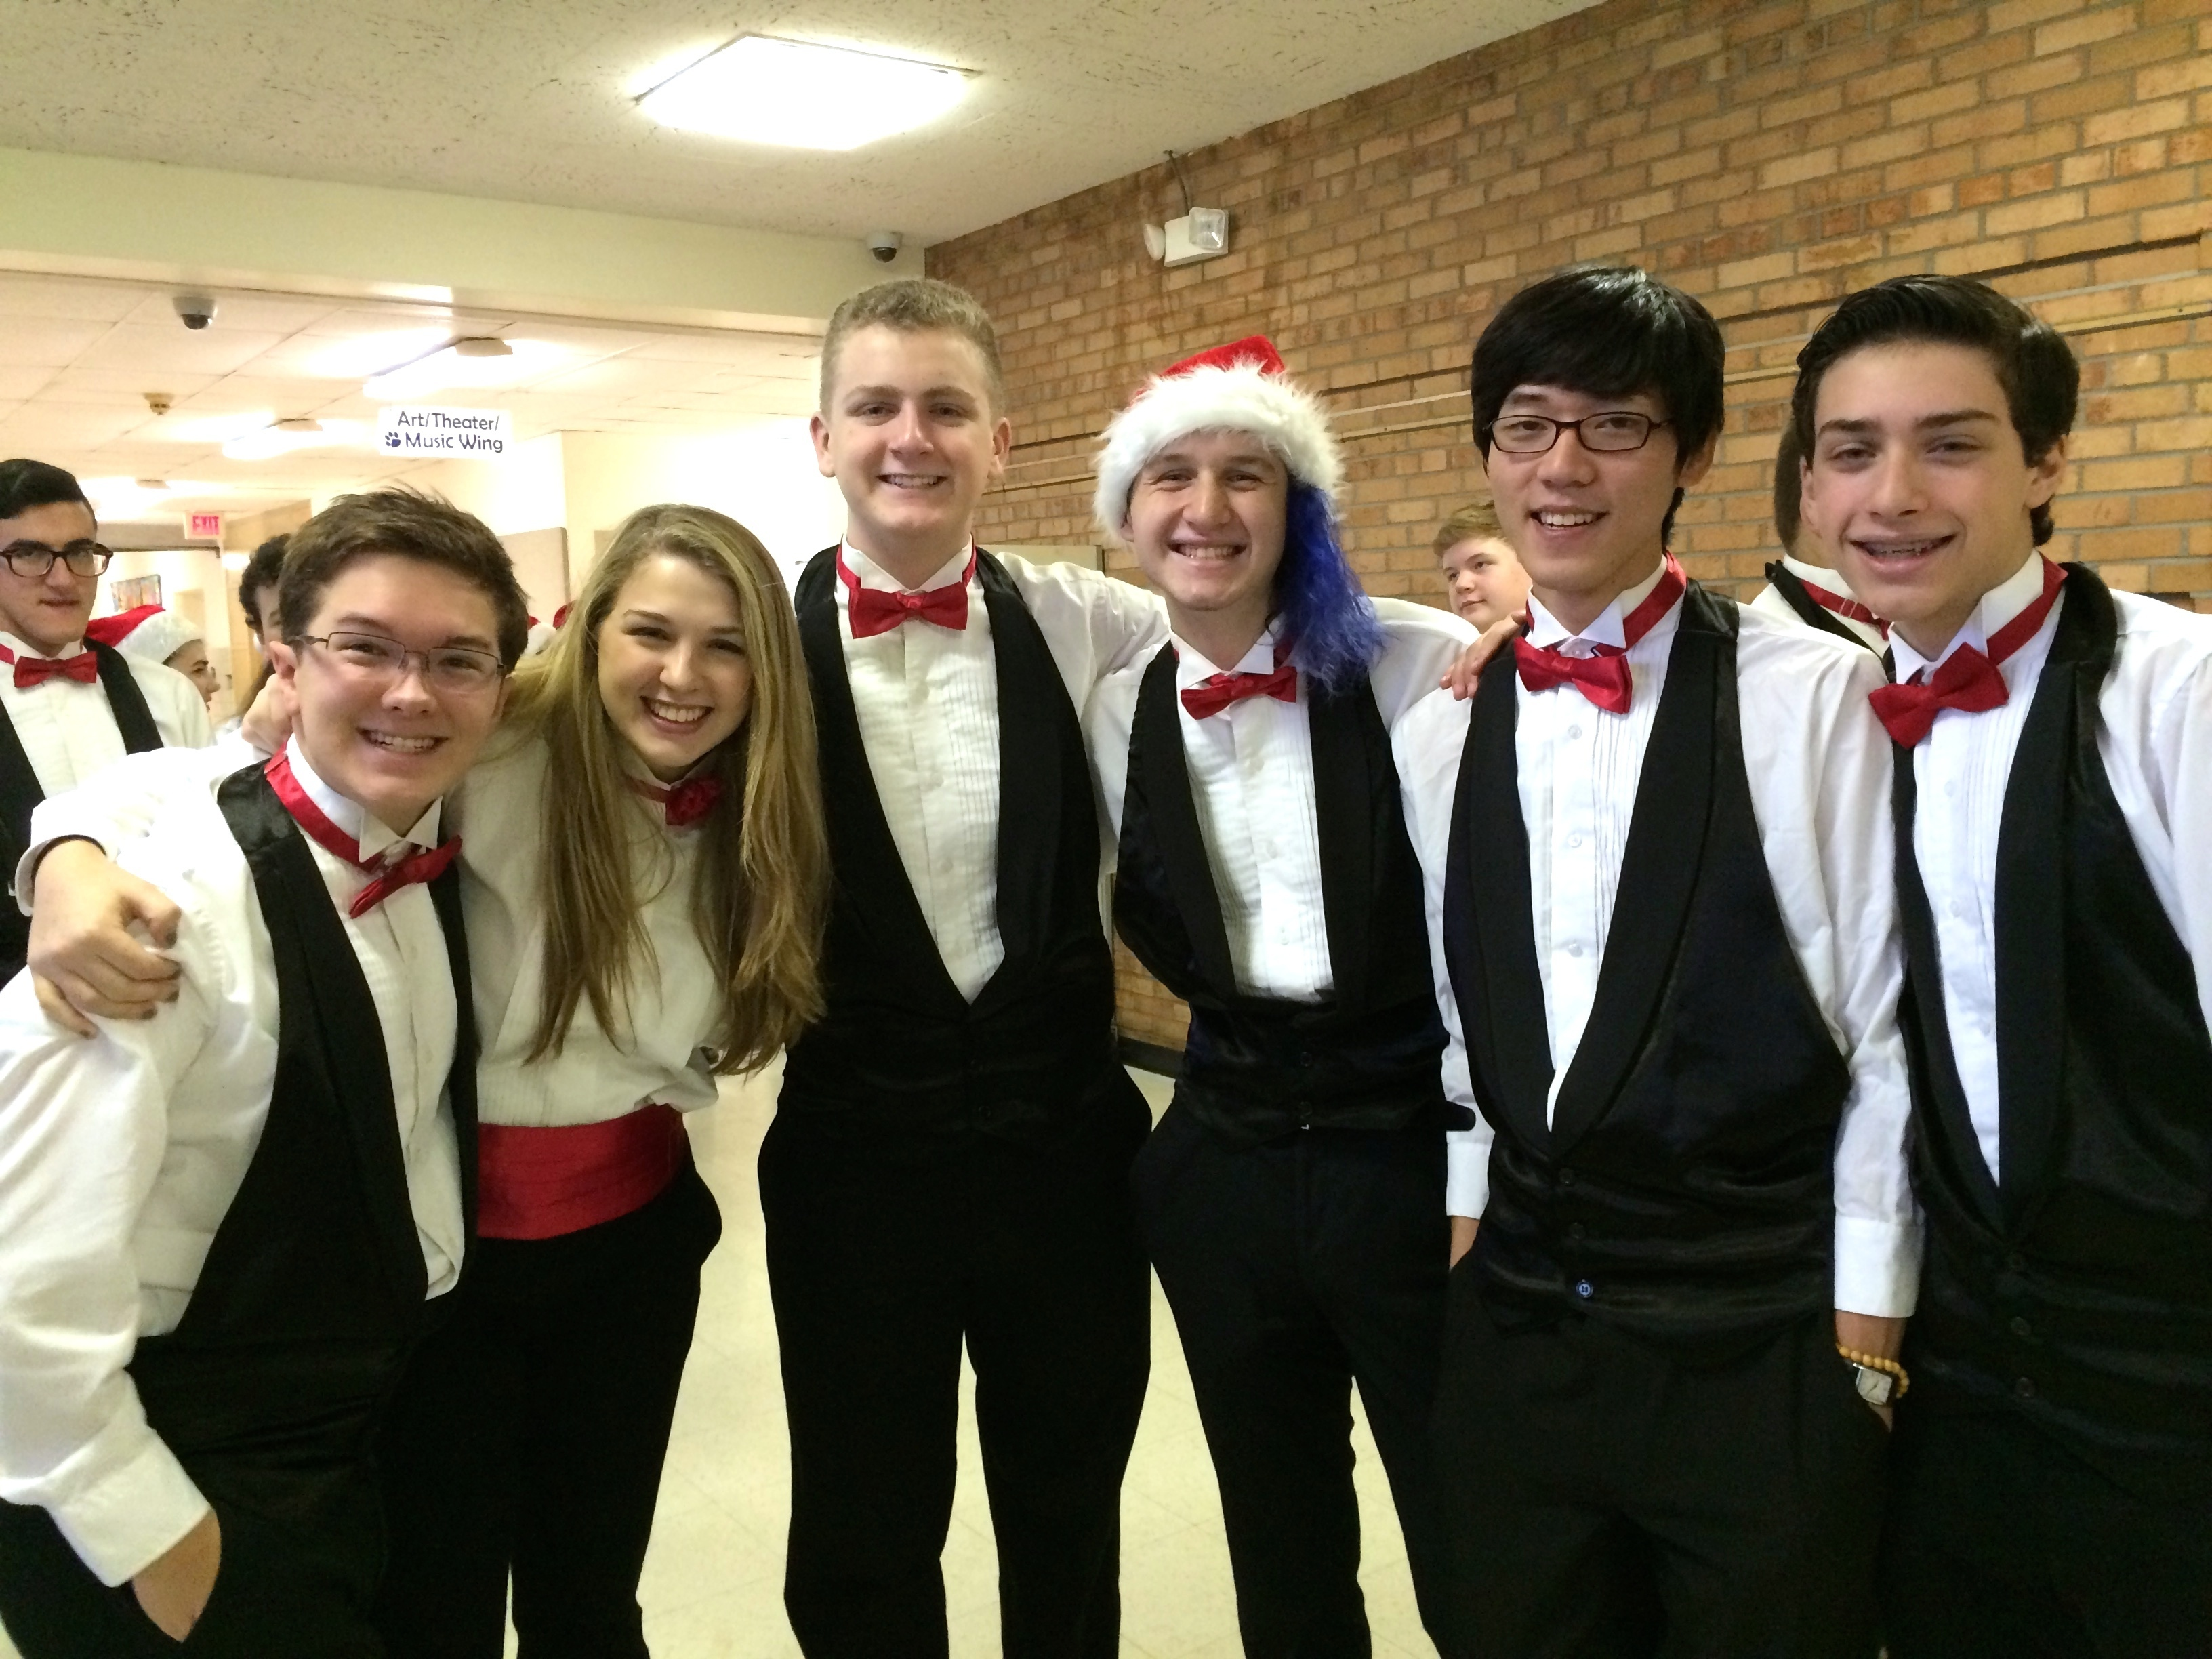 11729029ce5769f1d71d_92c8f6542a589dc70fd8_Members_of_the_CHS_Select_Choir_prepare_to_take_the_stage.jpg